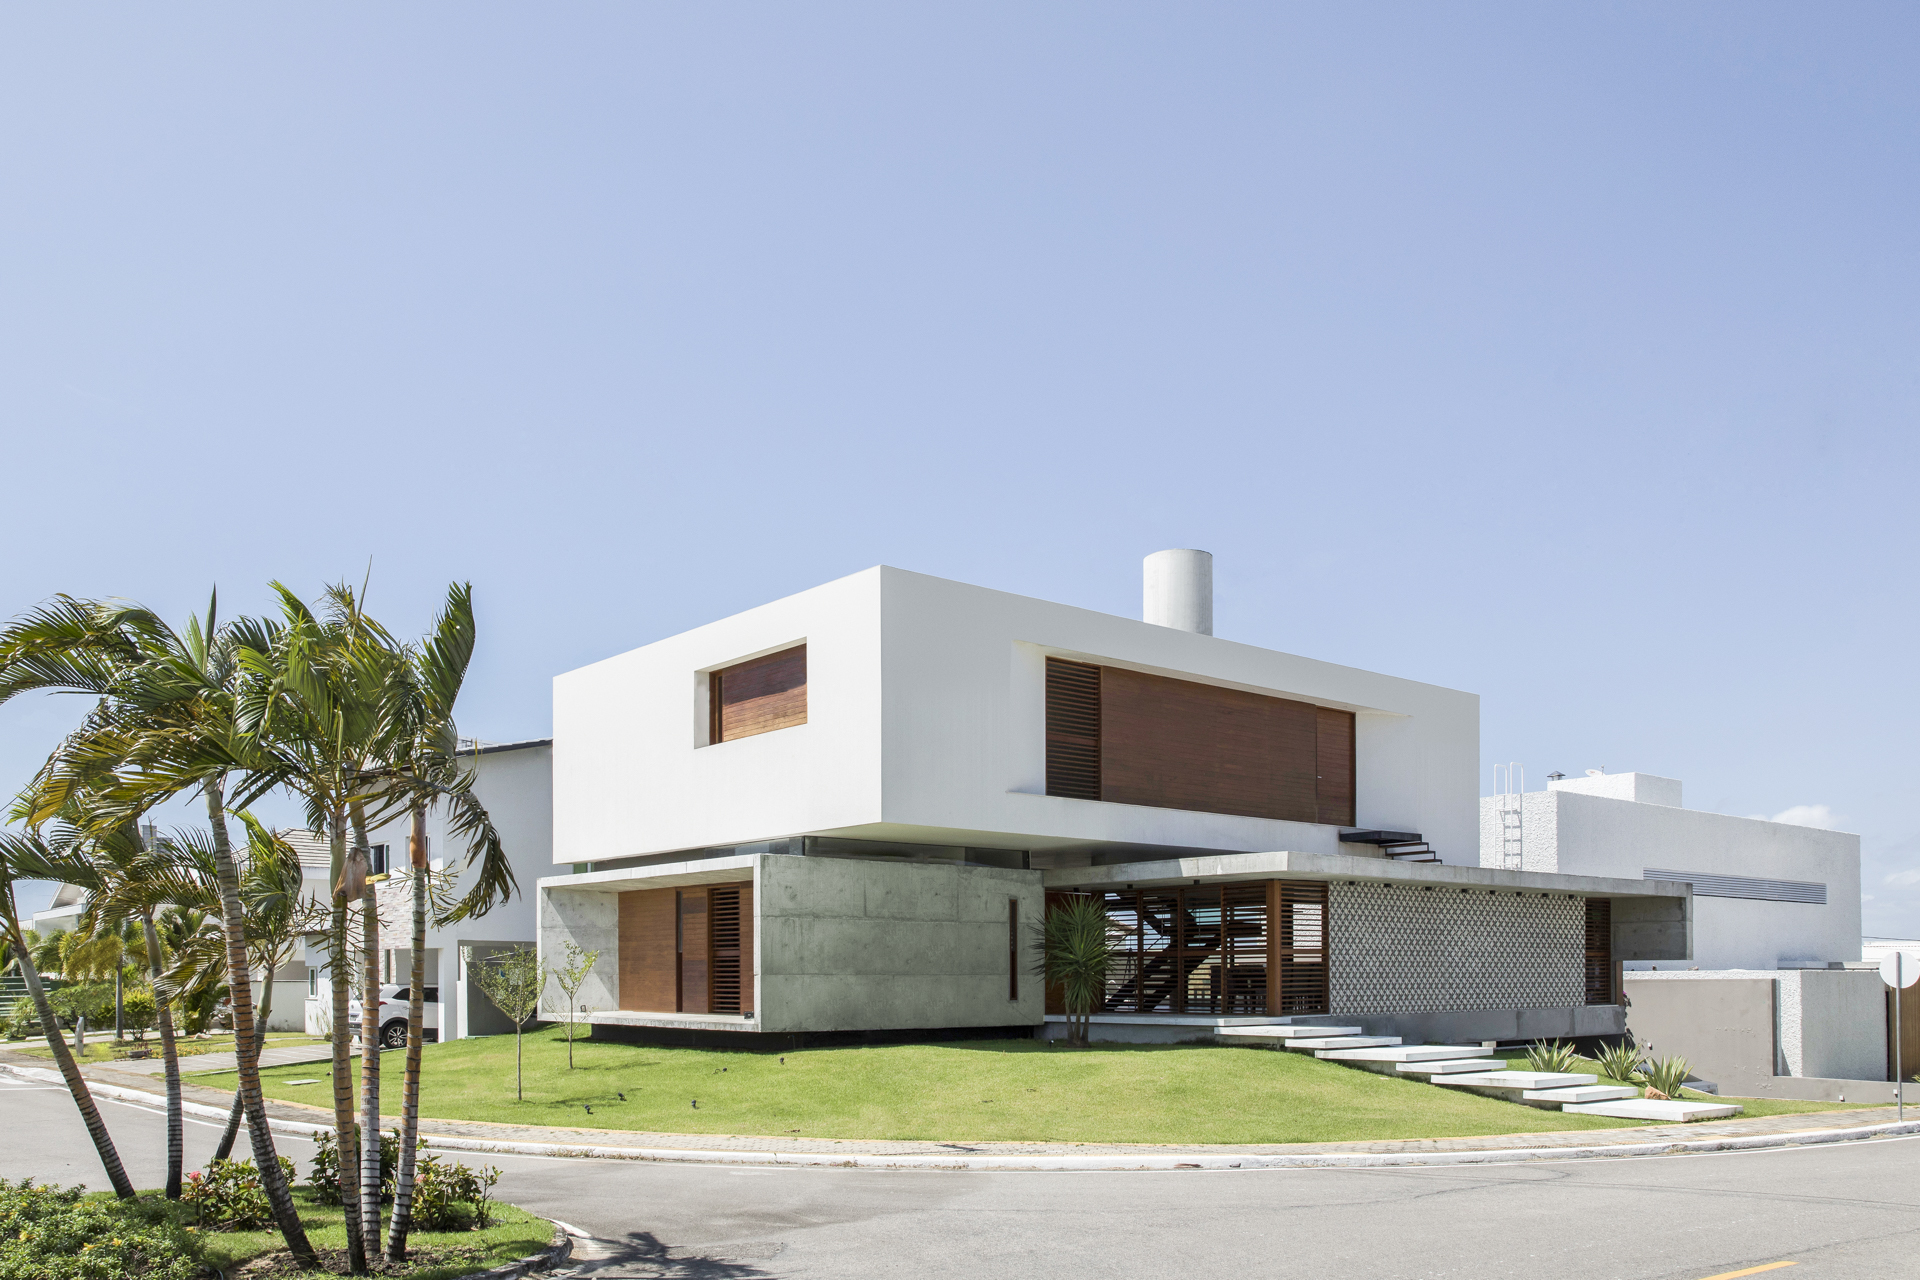 25_CASA_IF_-_Martins_Lucena_Arquitetos-6.jpg